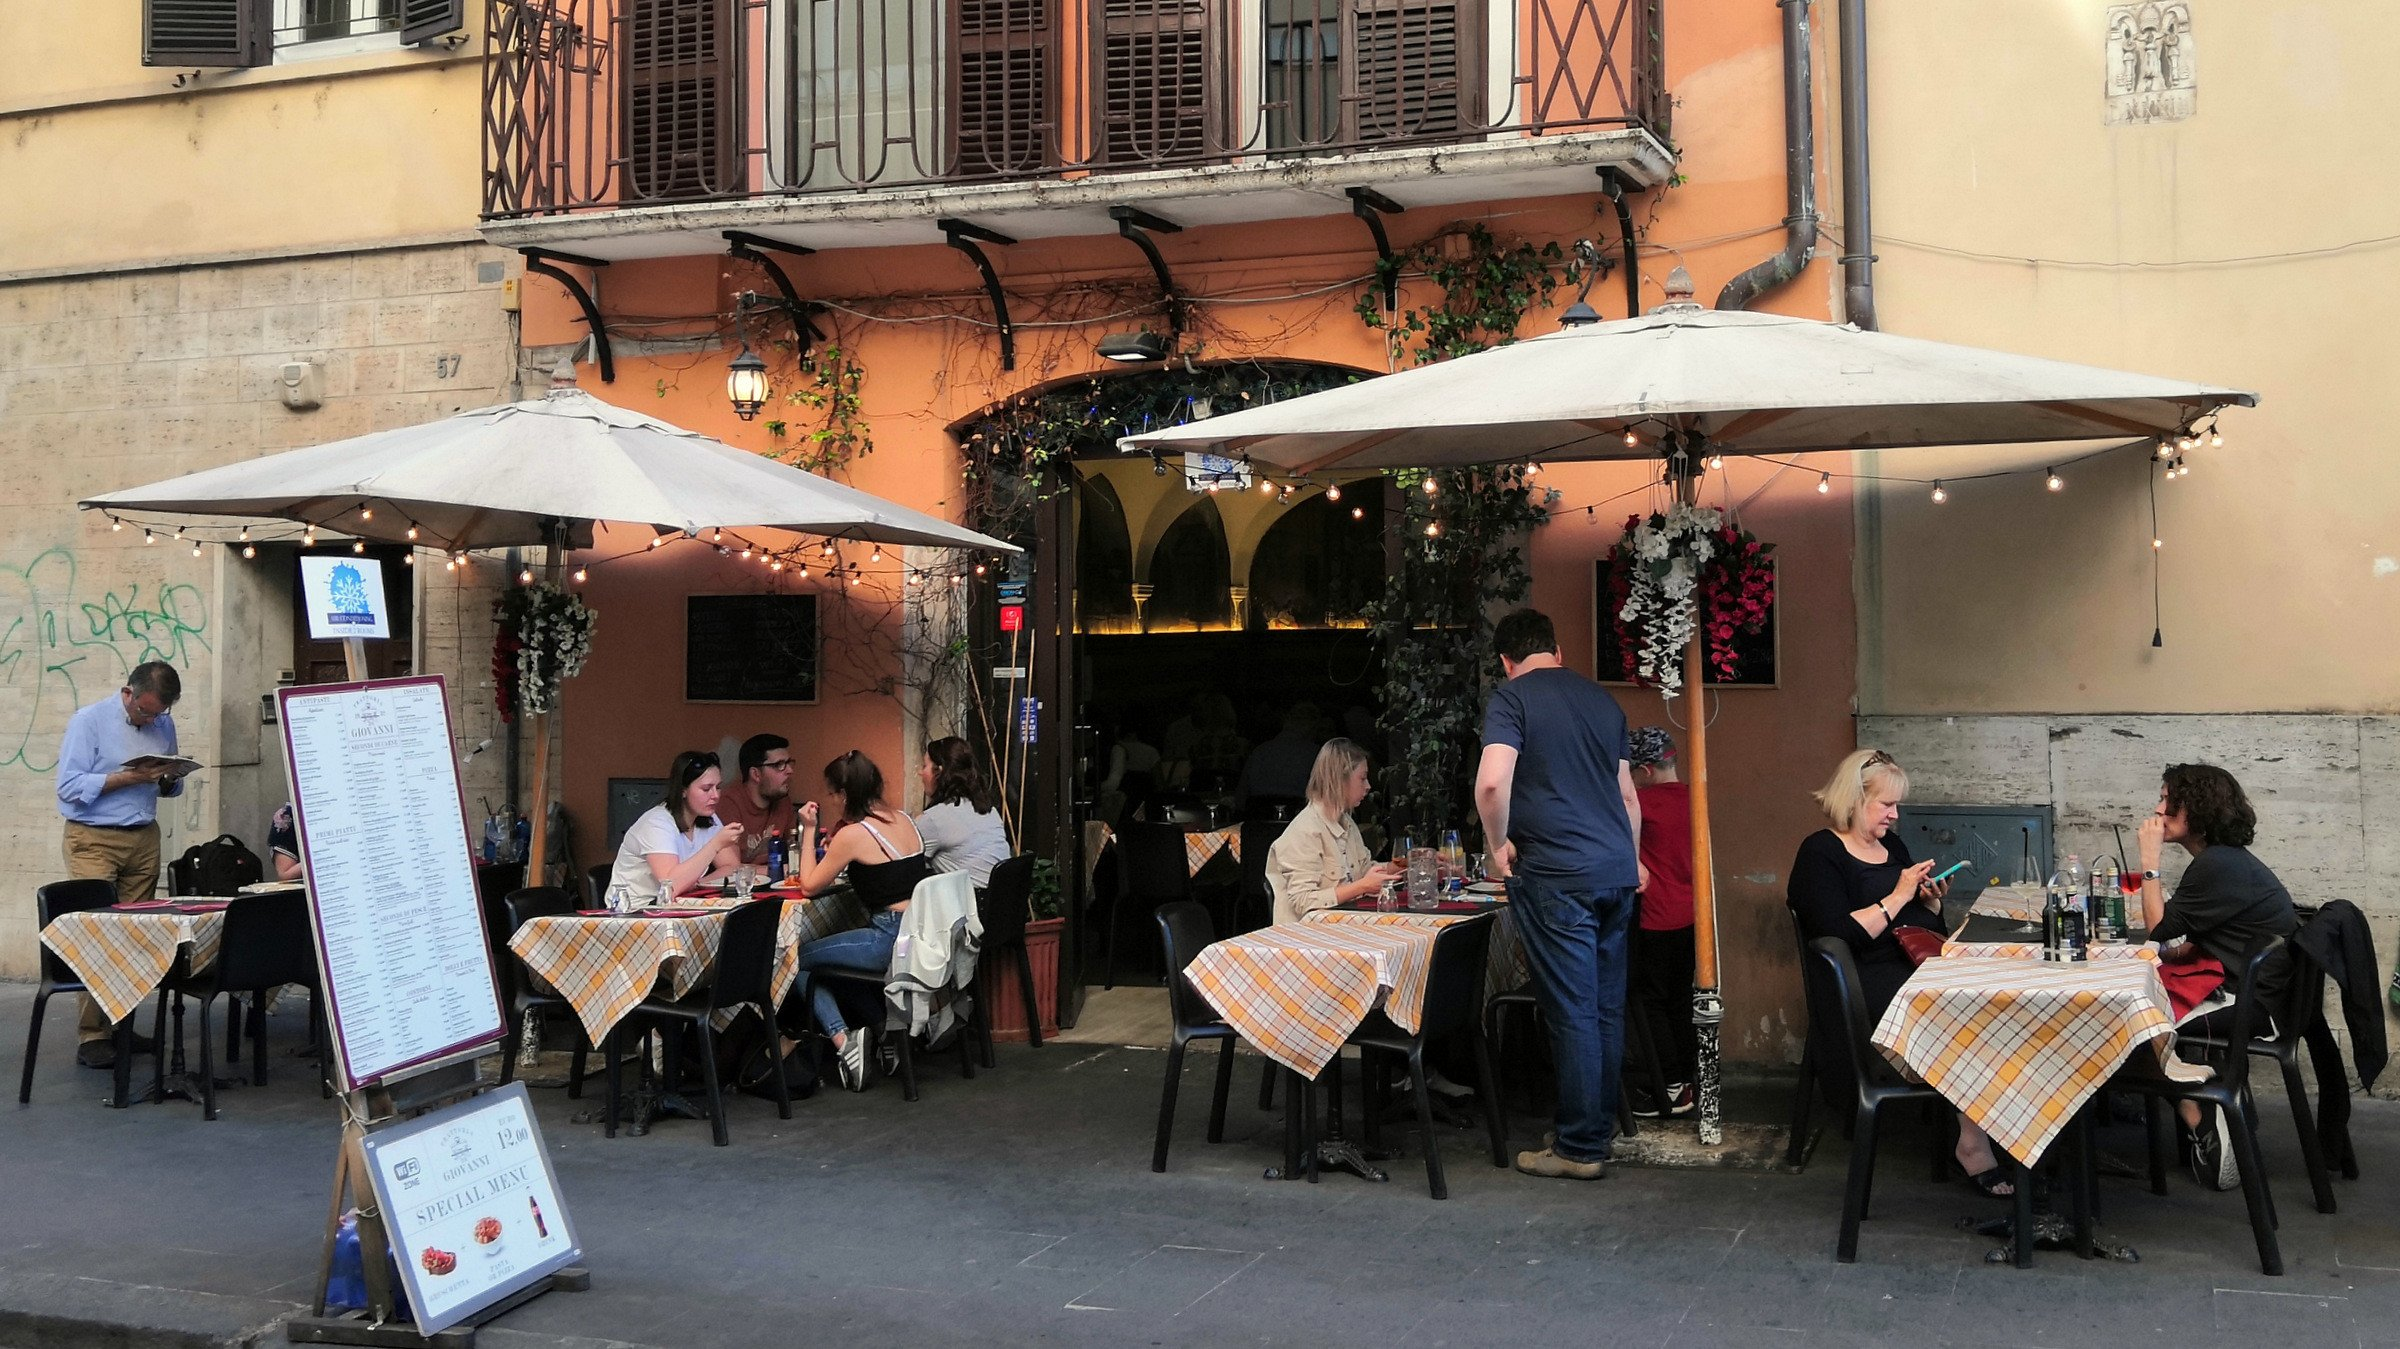 How to avoid being ripped off at a tourist trap restaurant in Rome